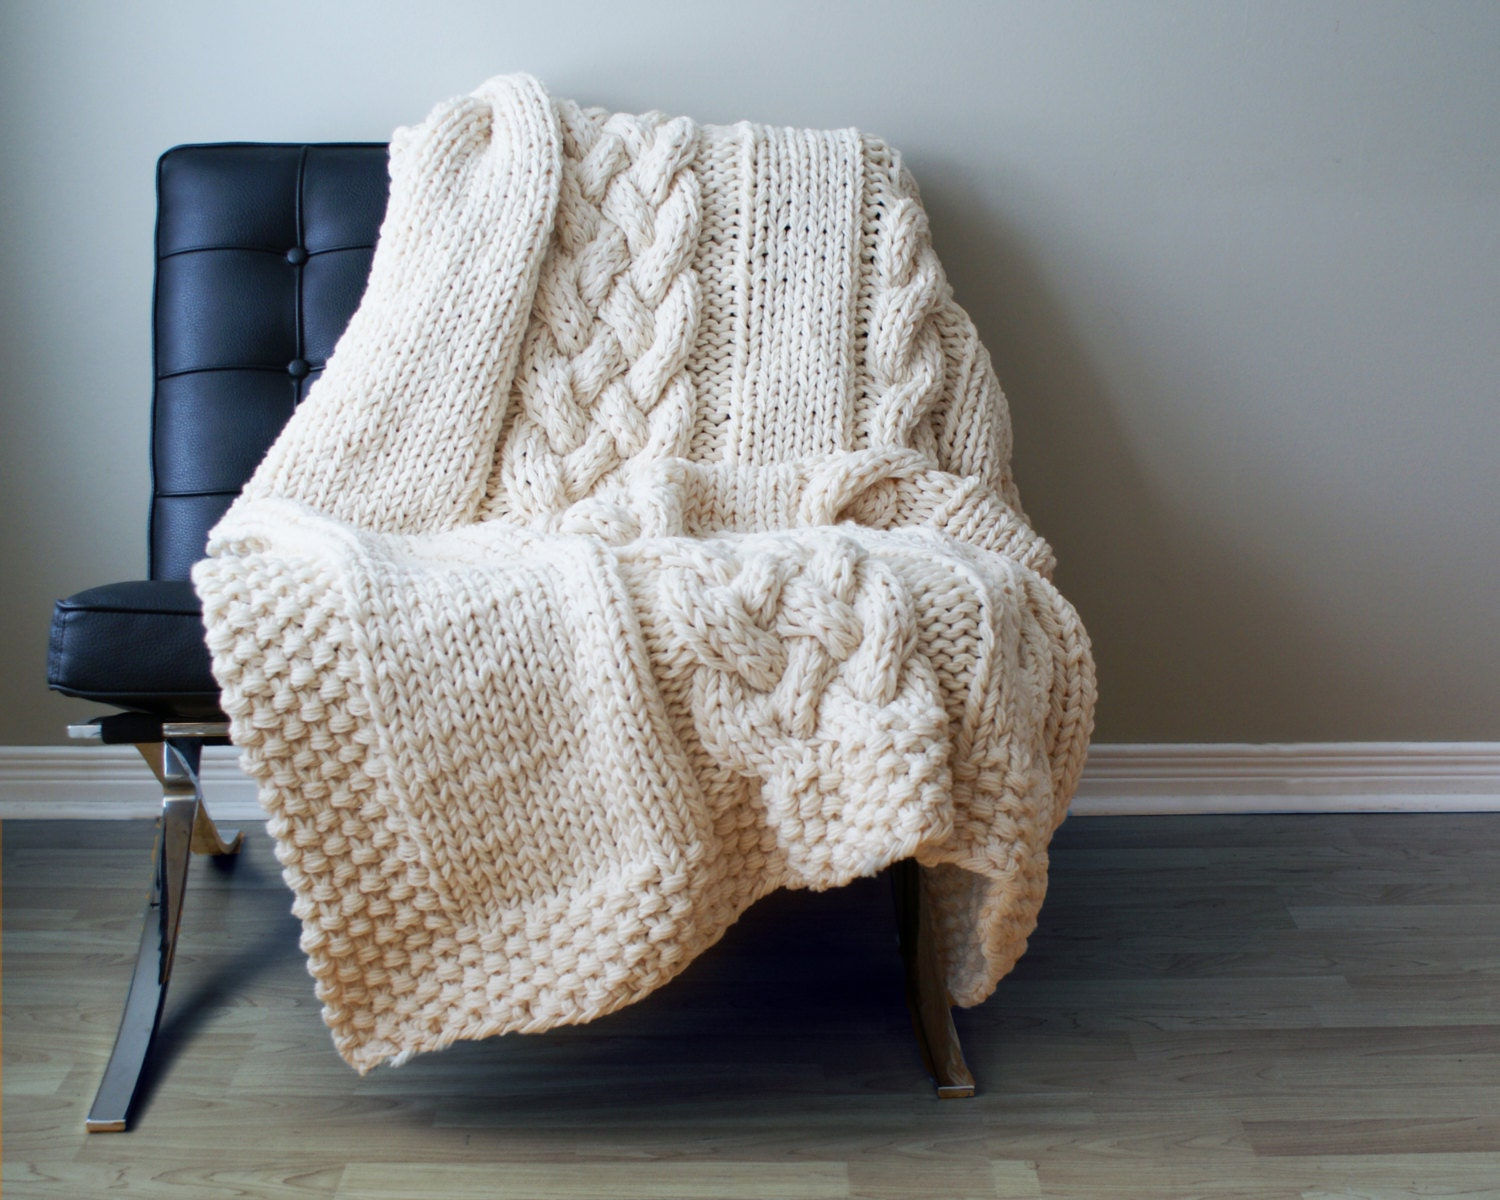 Knitted Blankets And Throws Patterns : DIY Knitting PATTERN Throw Blanket / Rug Super Chunky Double